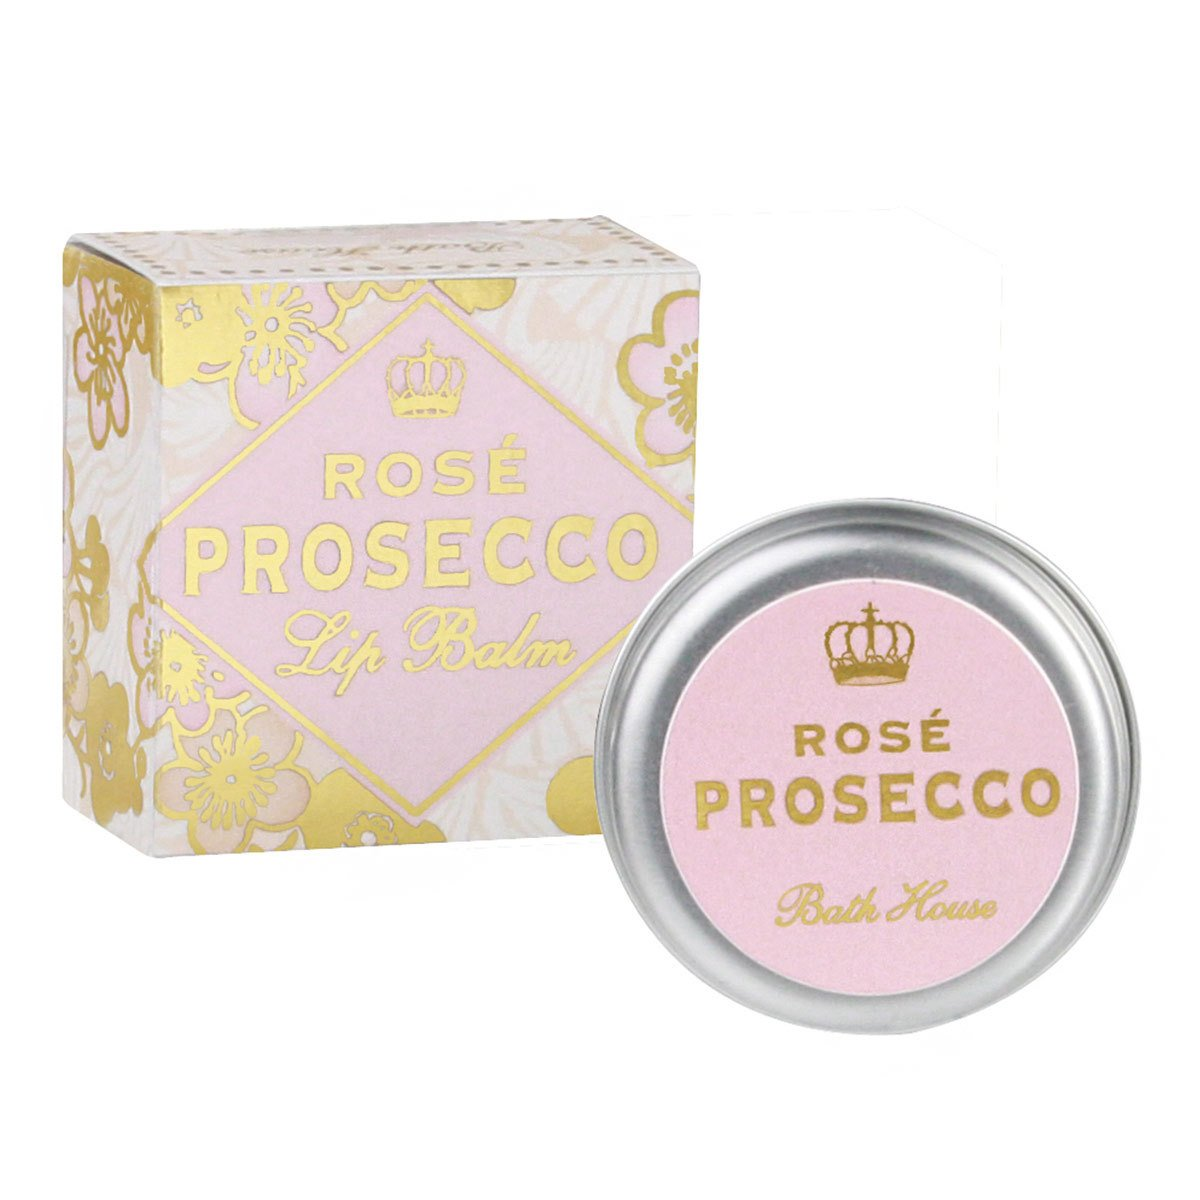 Bath House Rose Prosecco Lip Balm 15g Tin